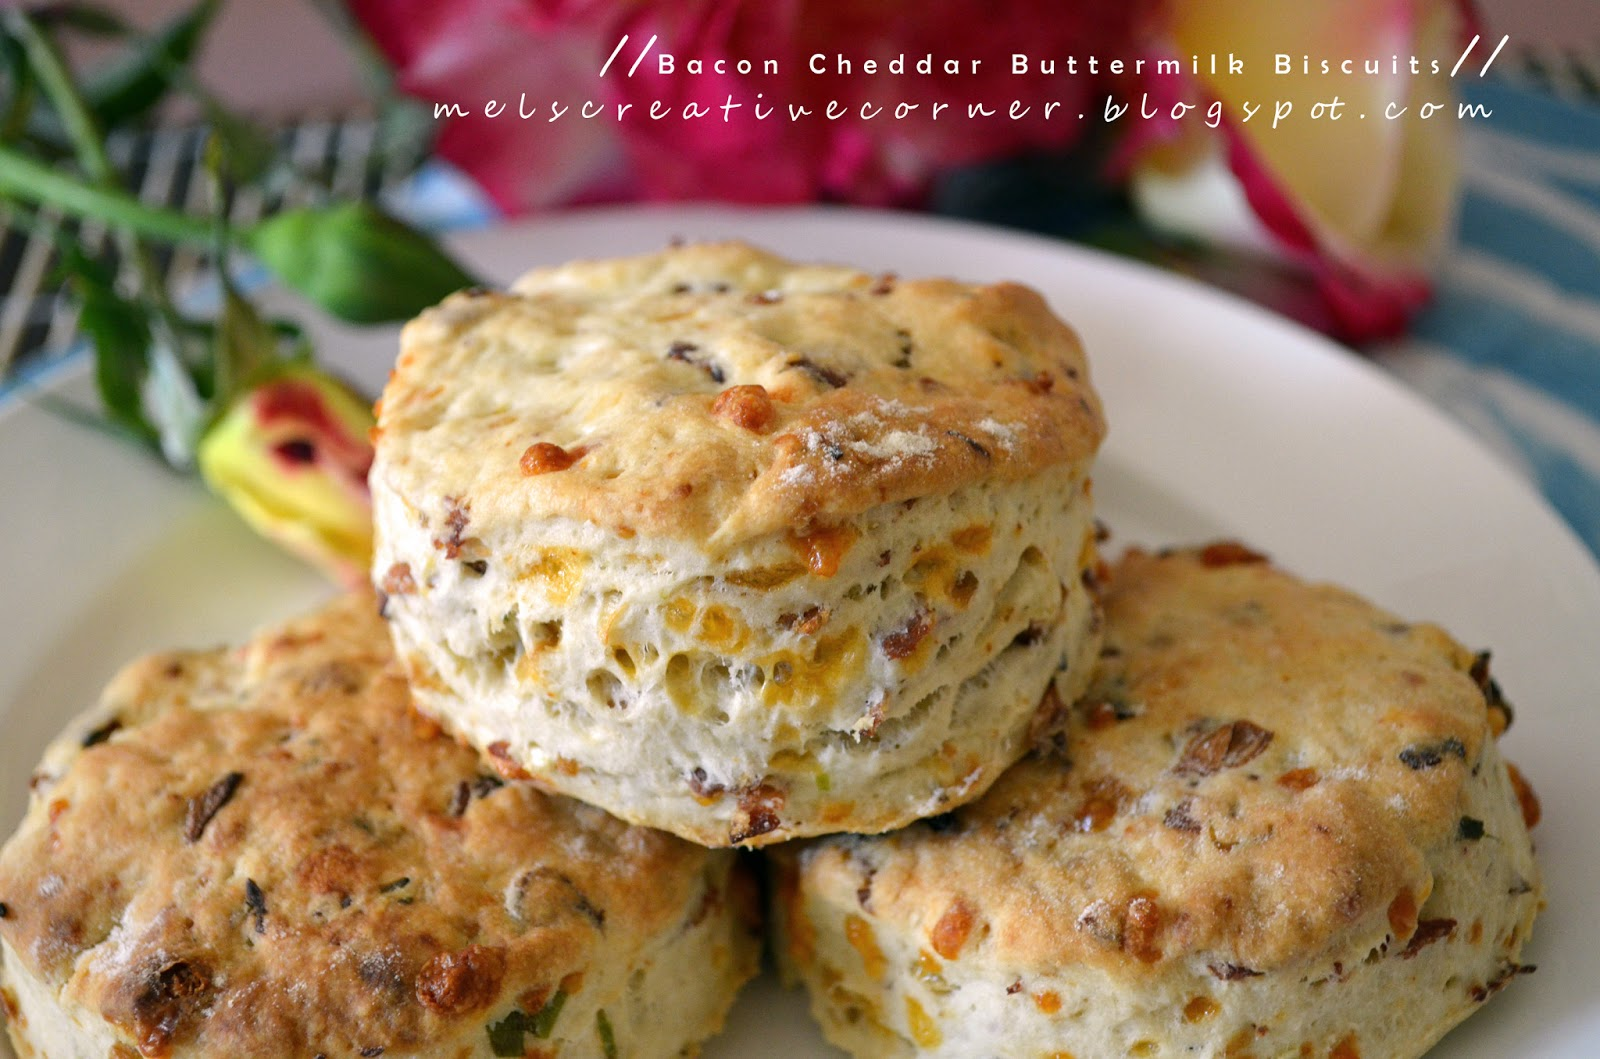 Mel's Creative Corner: Bacon Cheddar Buttermilk Biscuits!